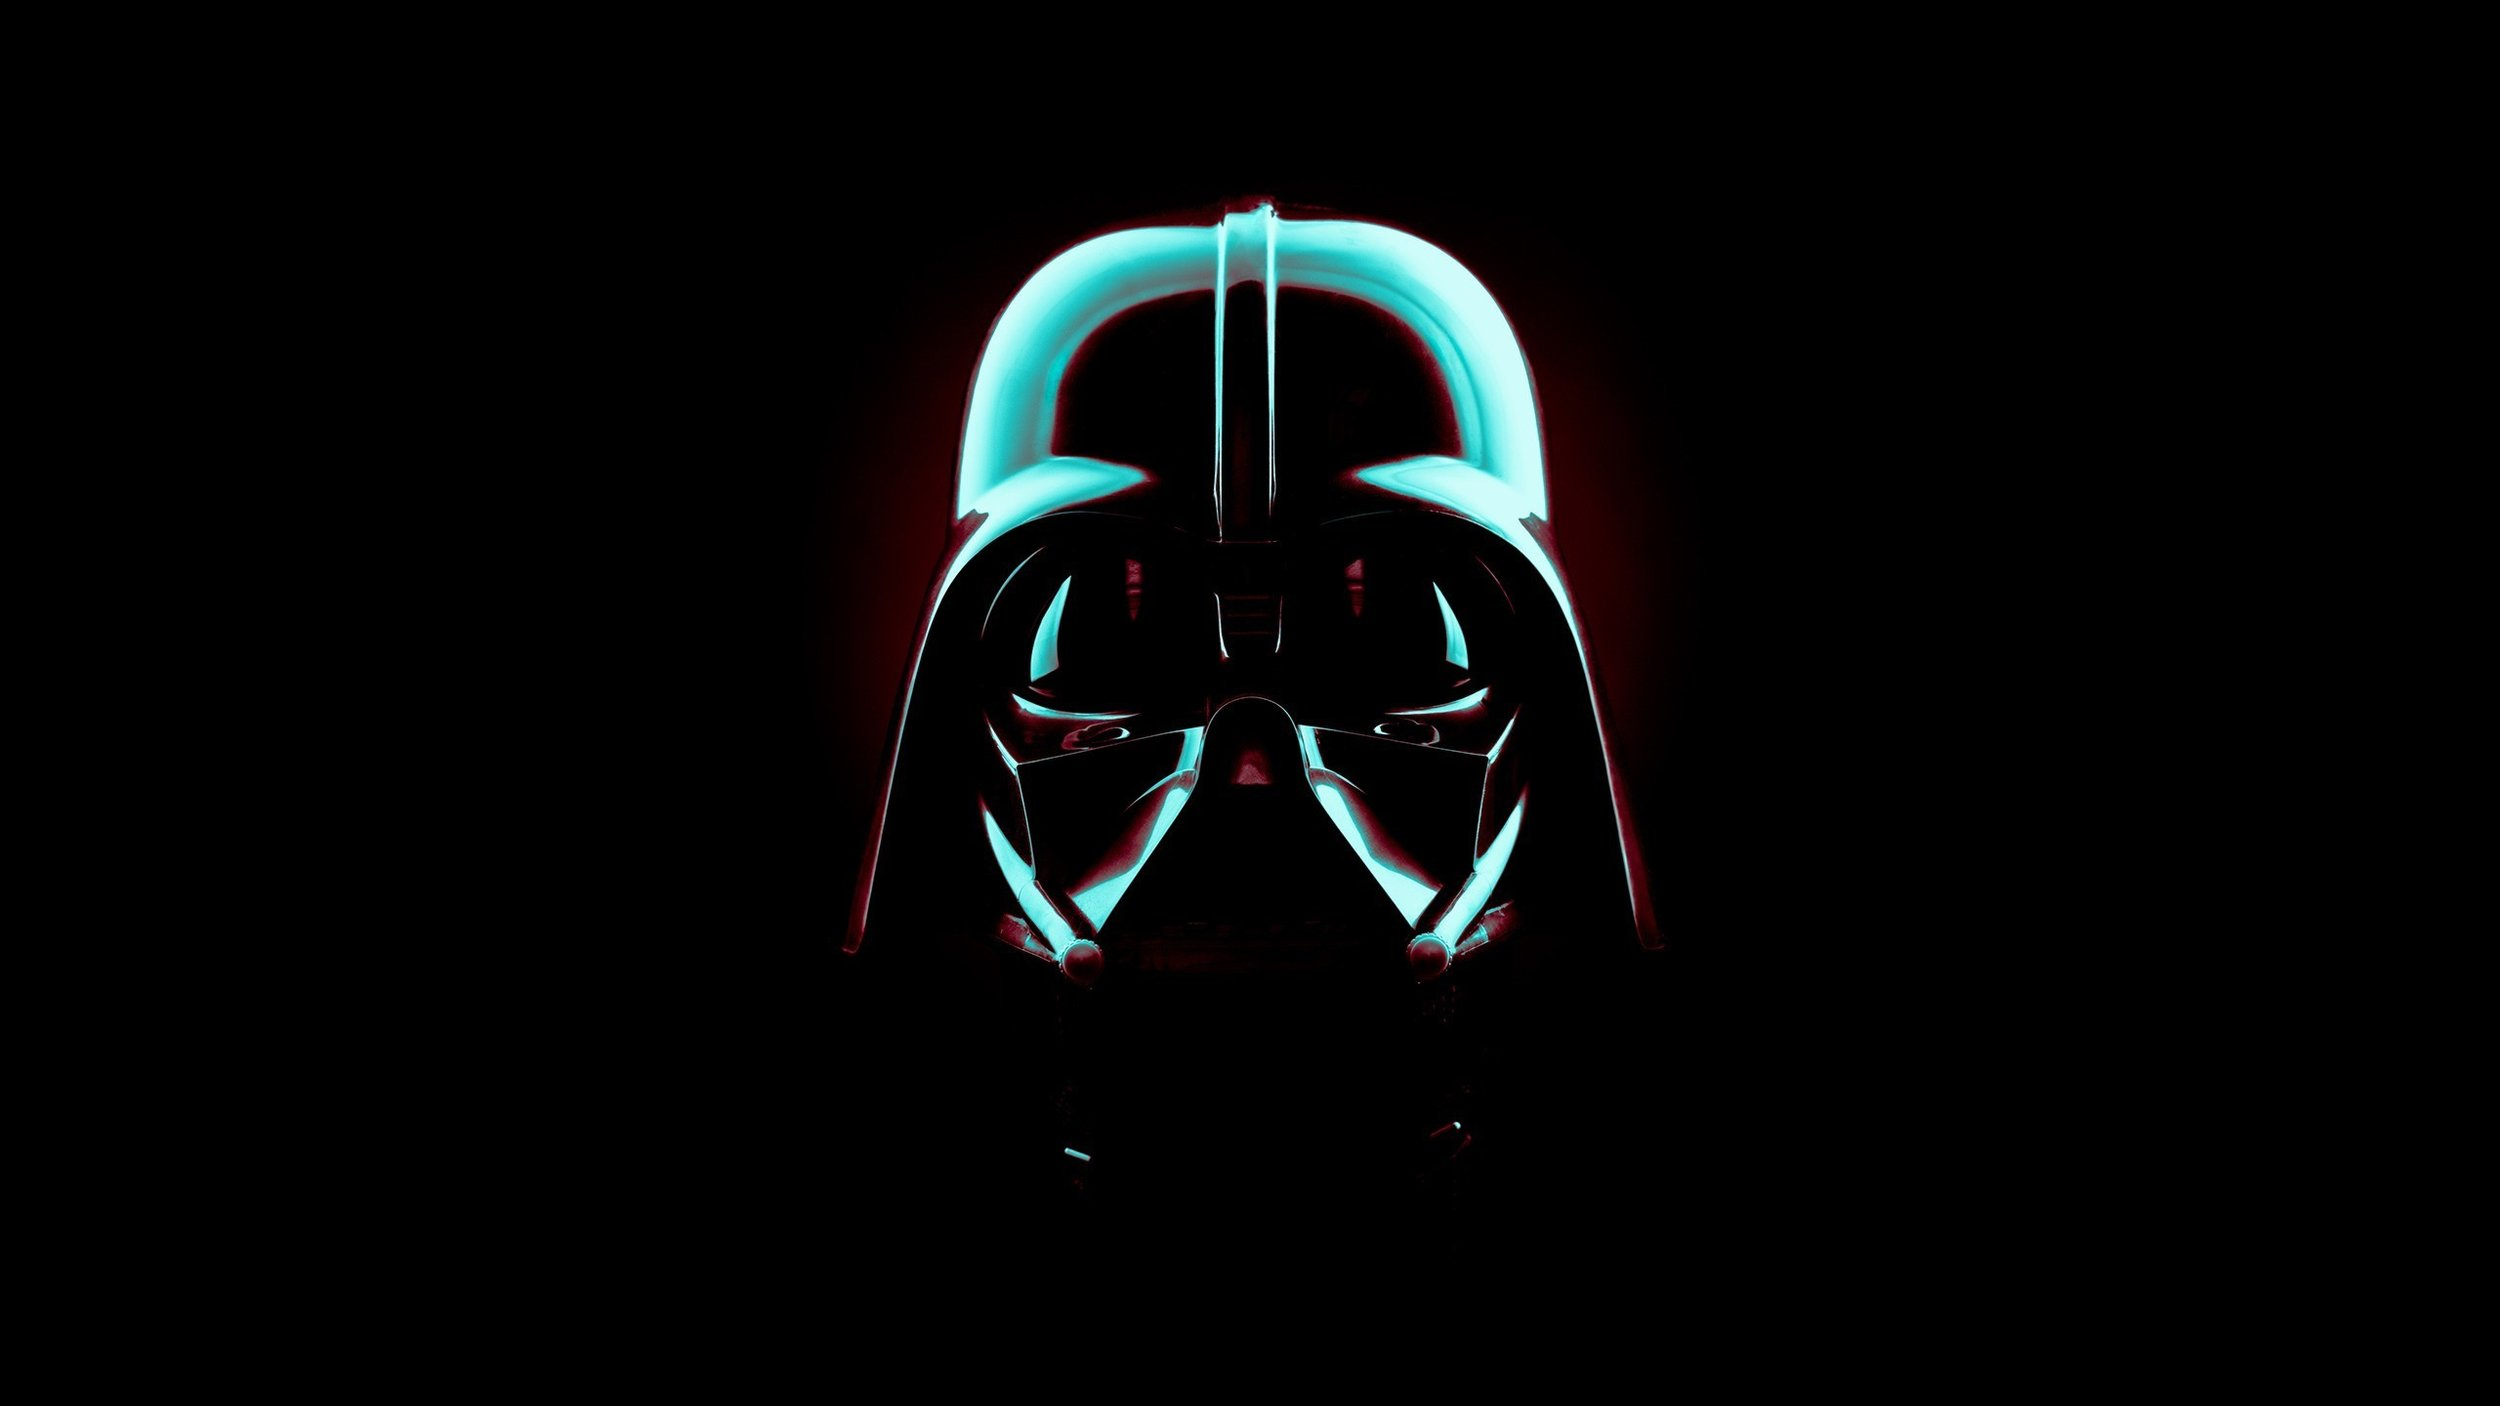 Darth-Vader-Computer-Wallpaper.jpg